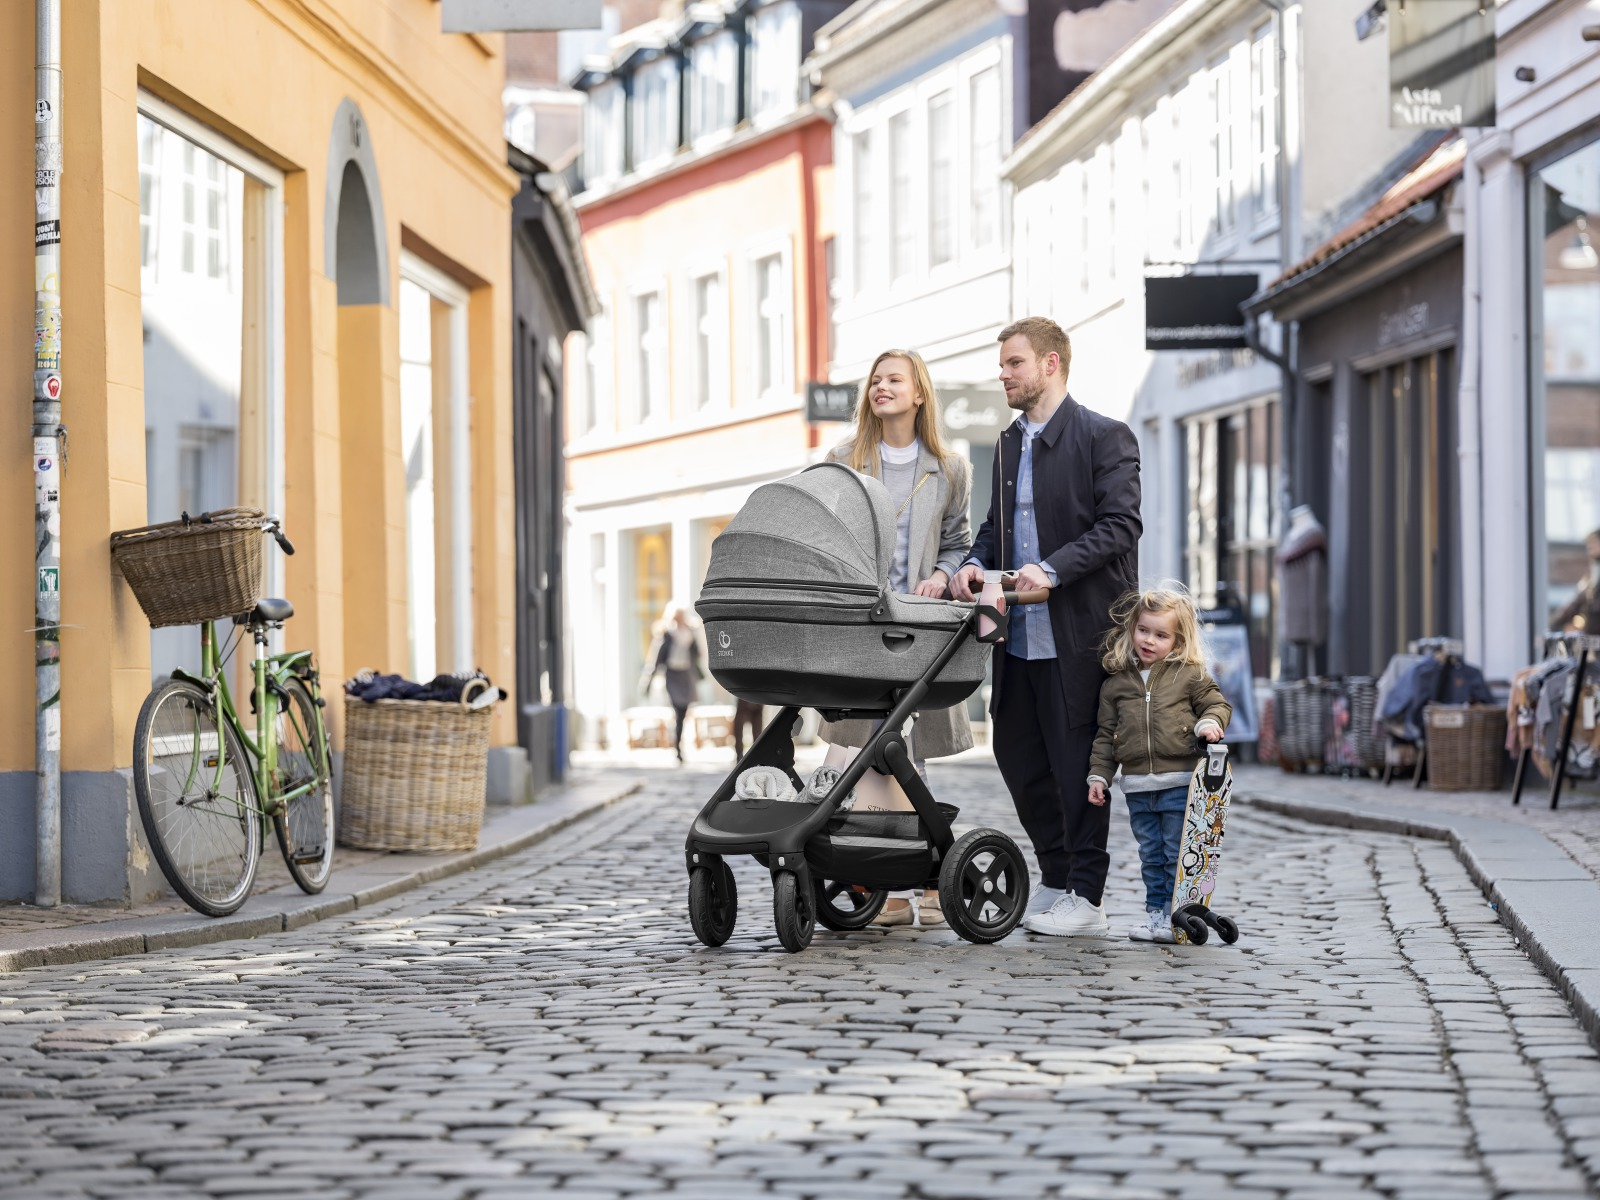 Stokke® Trailz™ with Black chassis and Terrain Wheels. Stokke™ Stroller Carry Cot, Black Melange. Urban.